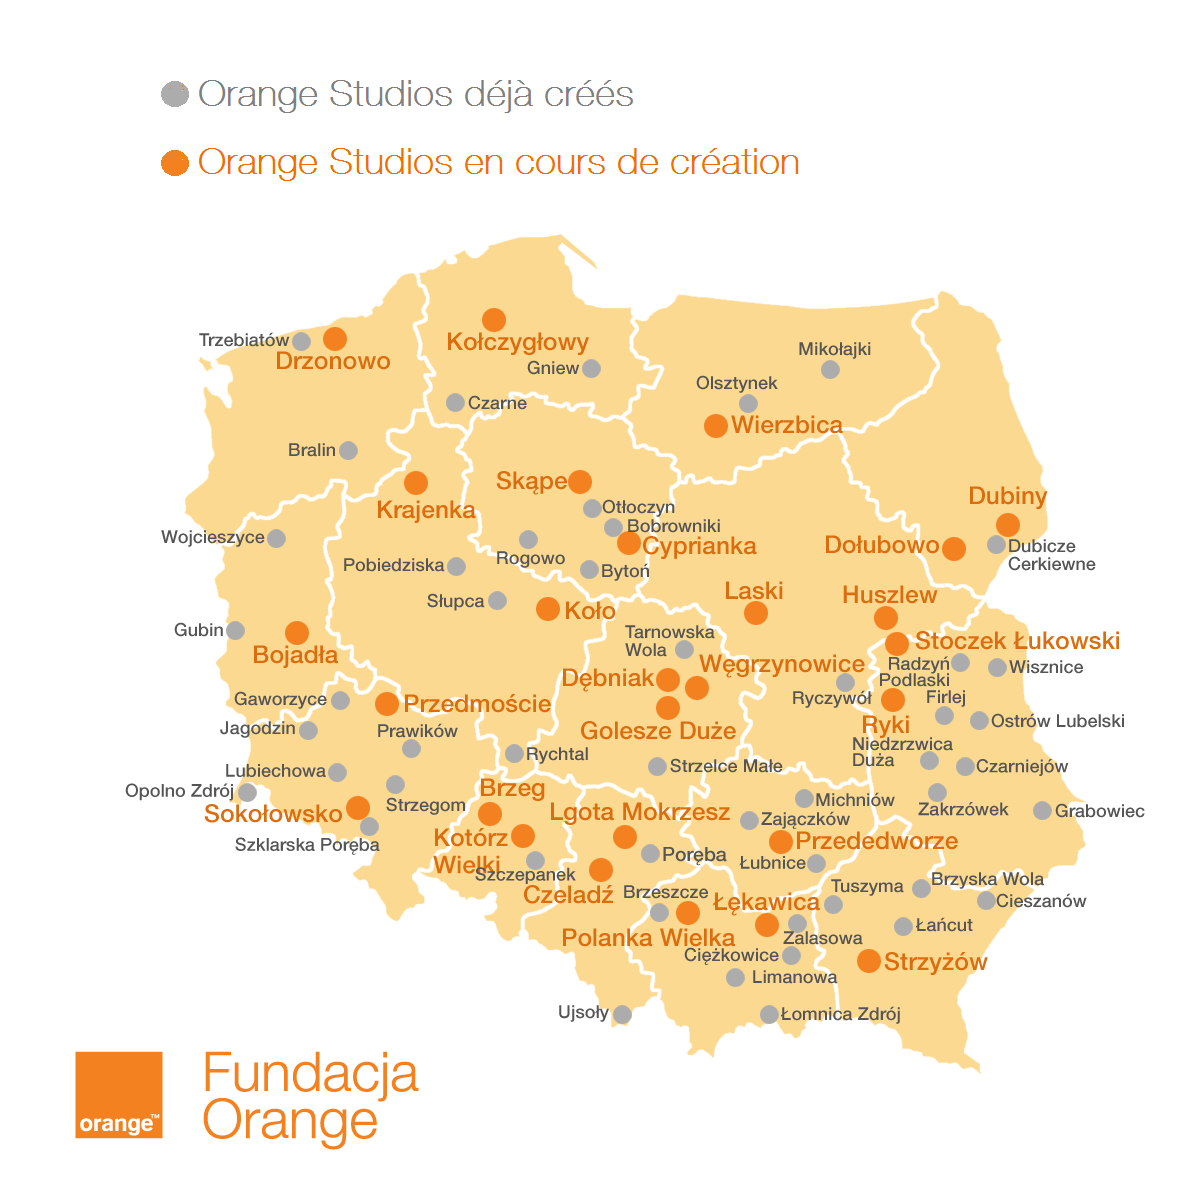 carte orange studio fondation orange pologne